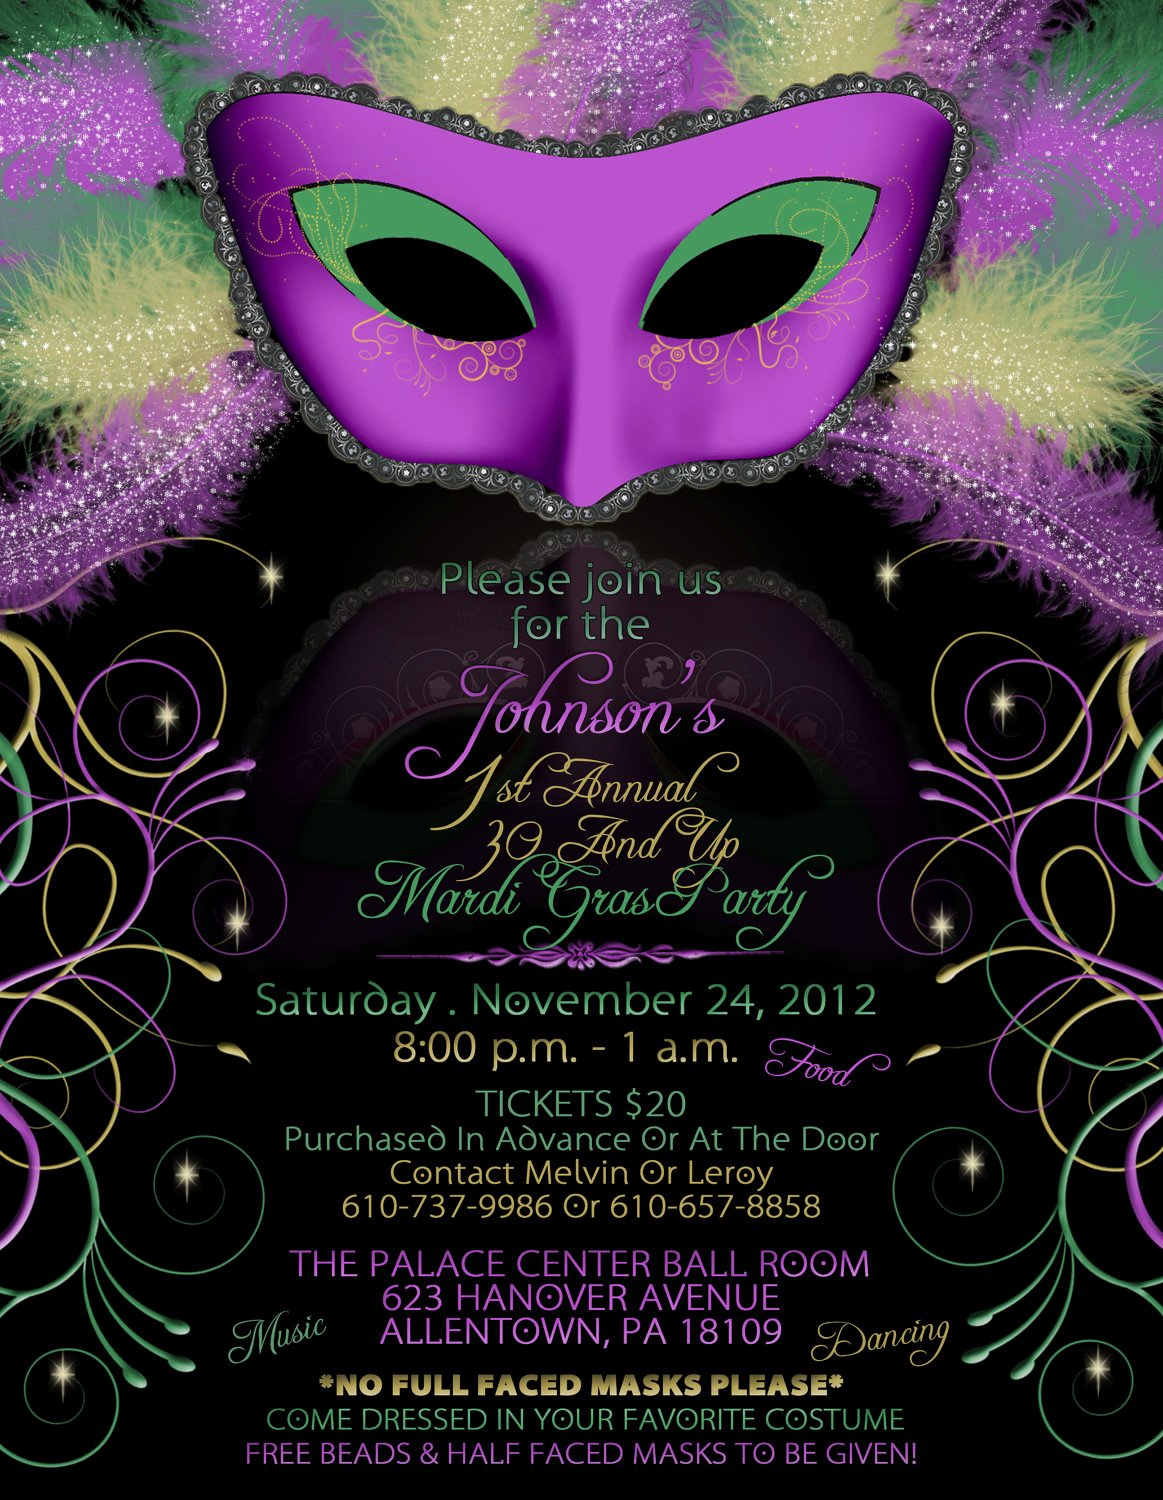 Mardi Gras Party Invitations Mardi Gras Party Invitations